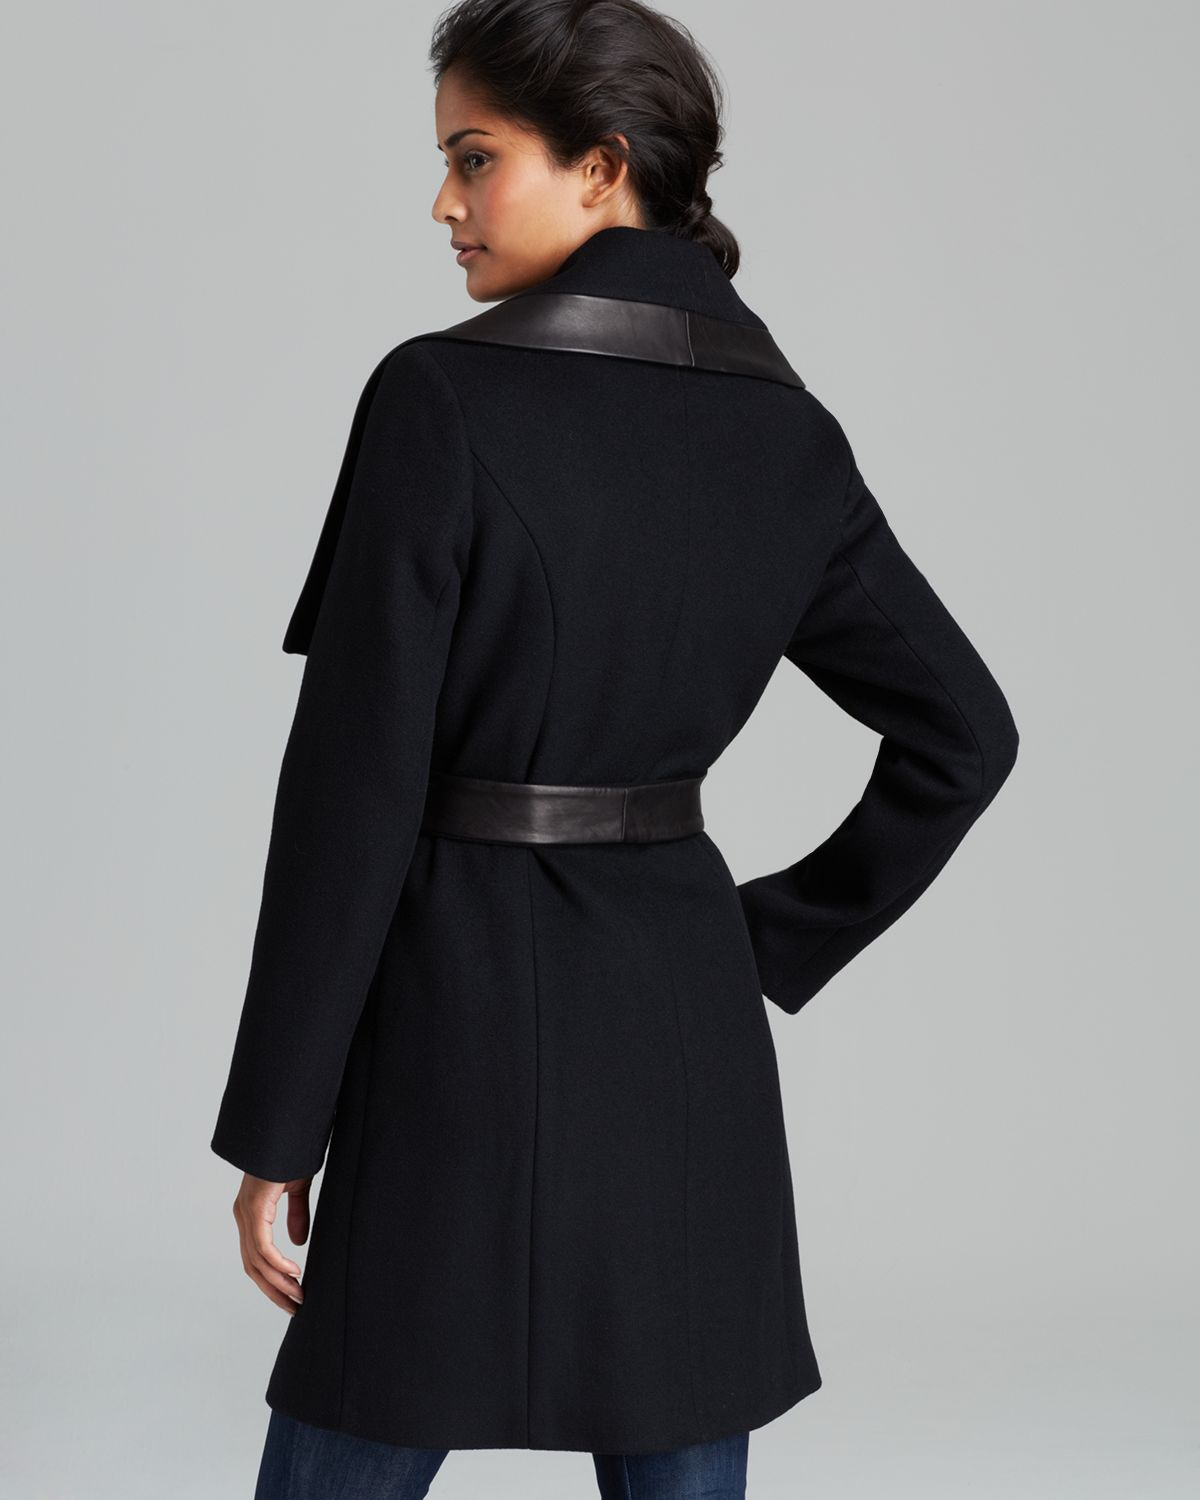 Elie tahari Coat - Marina Leather Trim Belted in Black | Lyst